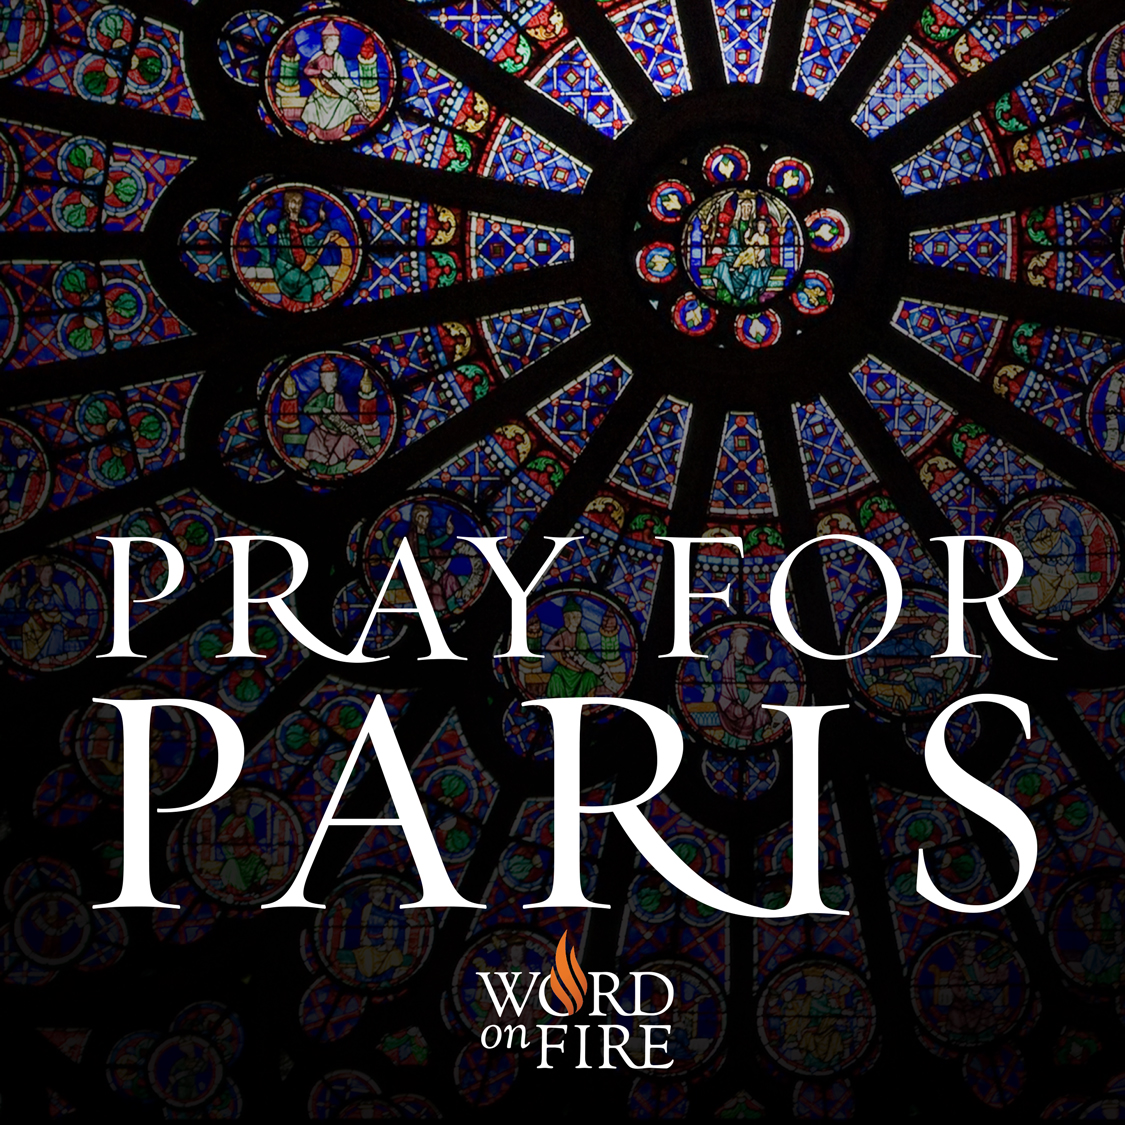 prayergraphics com pray for paris